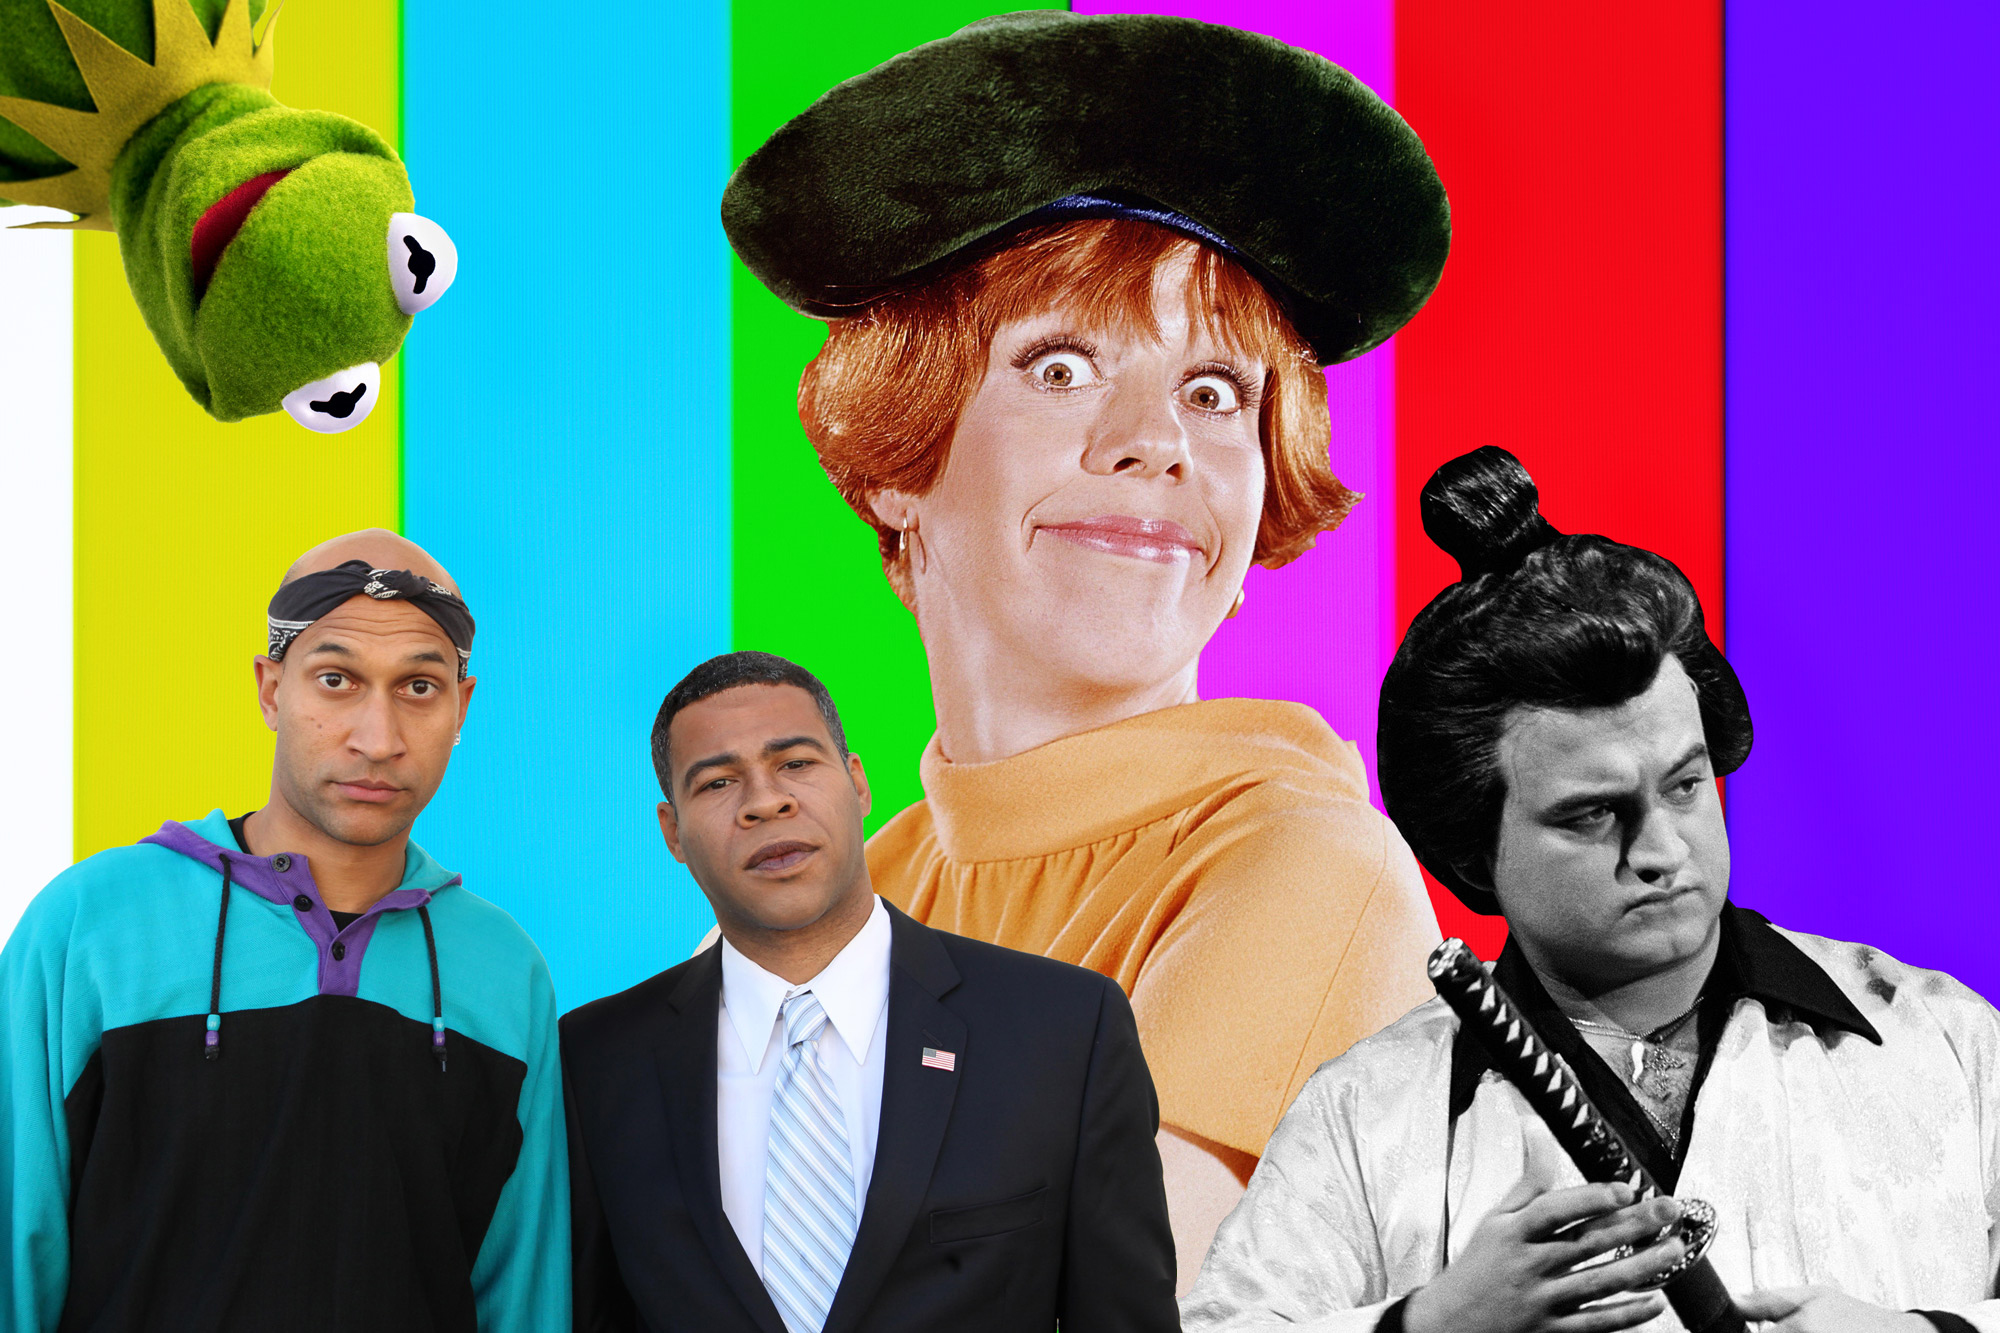 40 Greatest Sketch-Comedy TV Shows of All Time